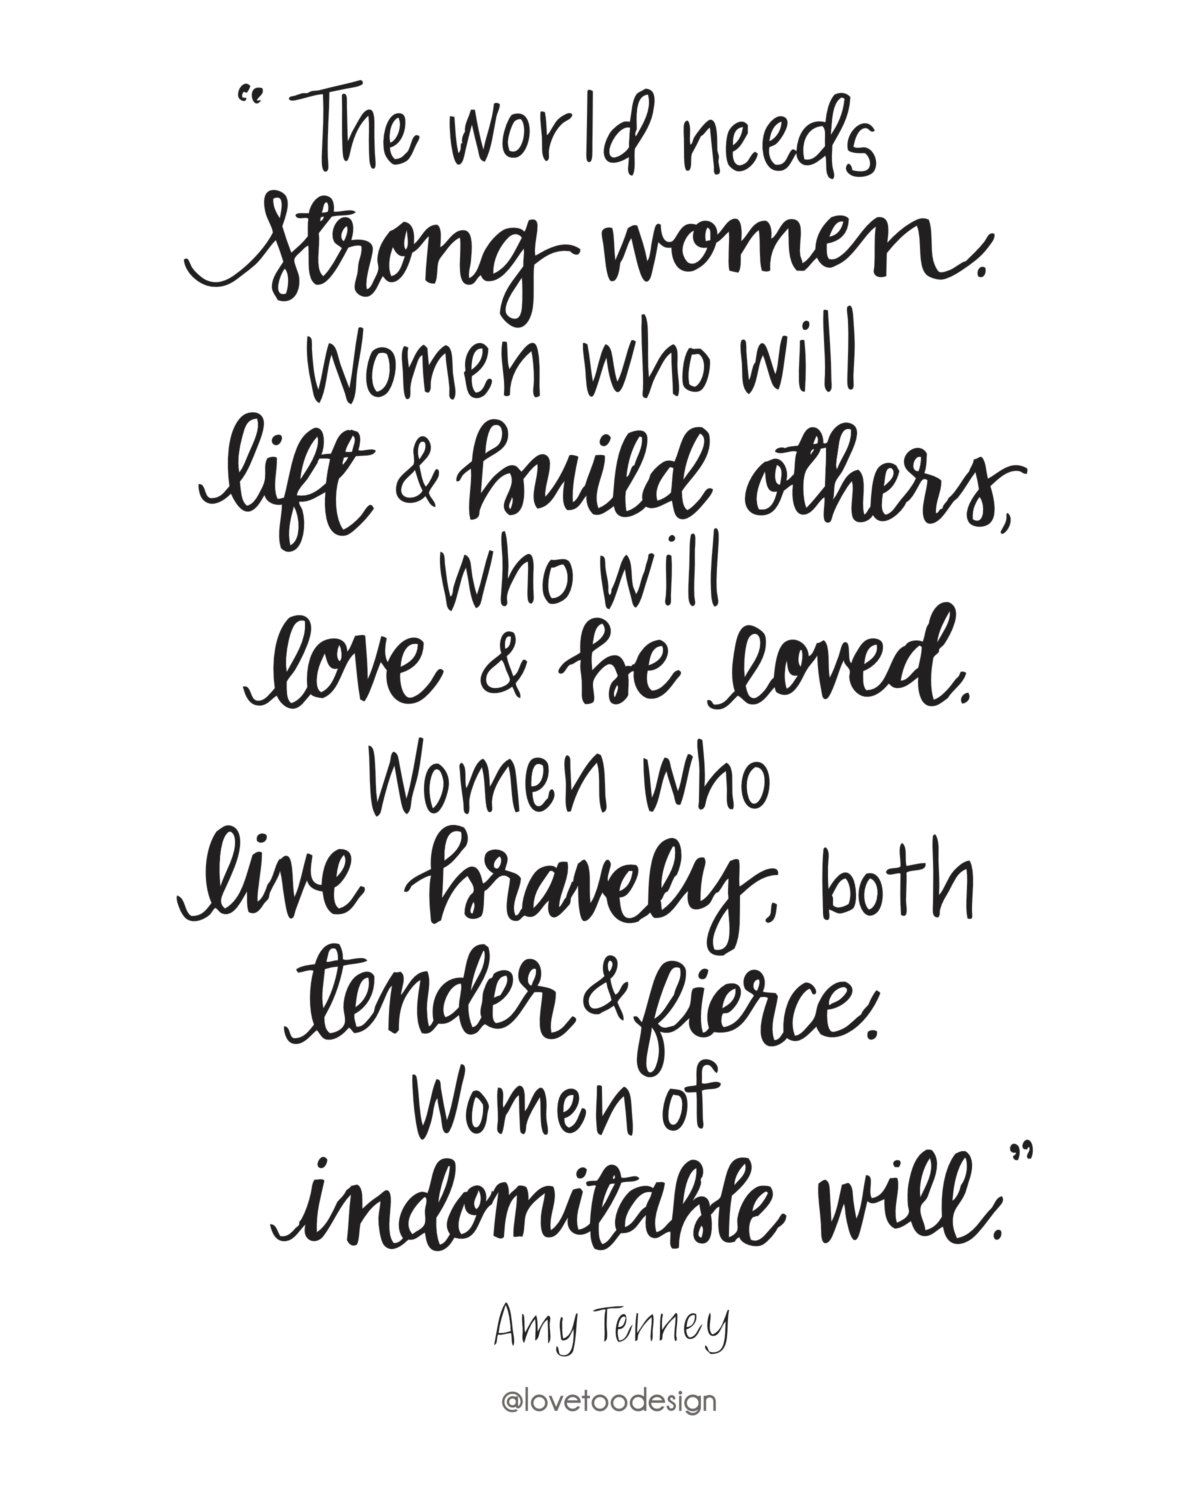 Strong Women Quotes The World Need Strong Womenwomen Who Will Lift And Build Others